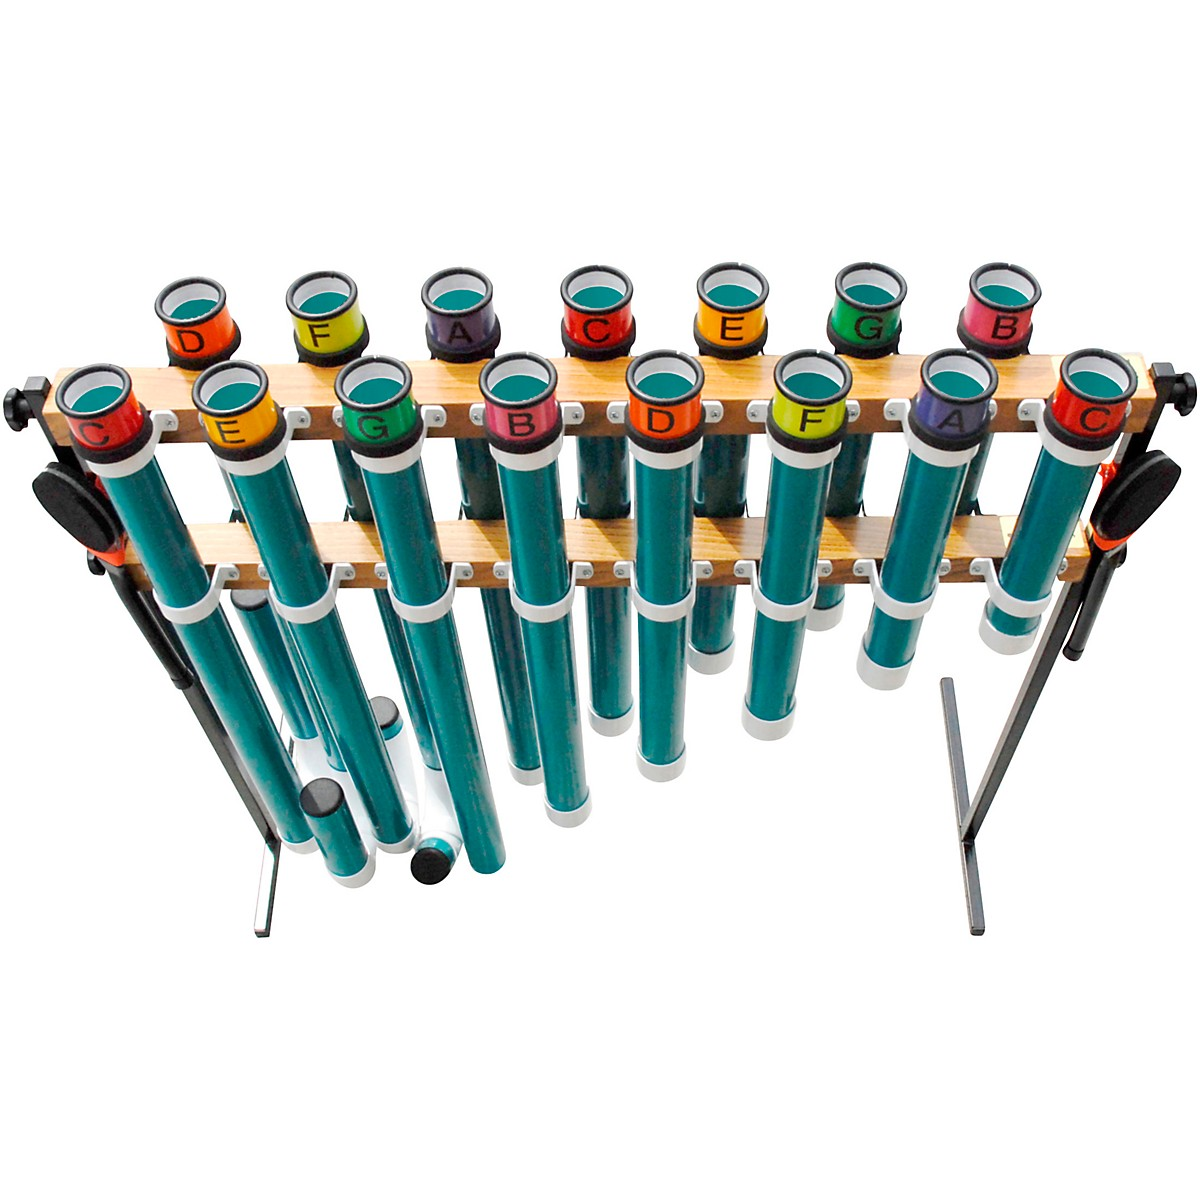 Joia Tubes Heavy Duty Pipe Instrument Tube Set